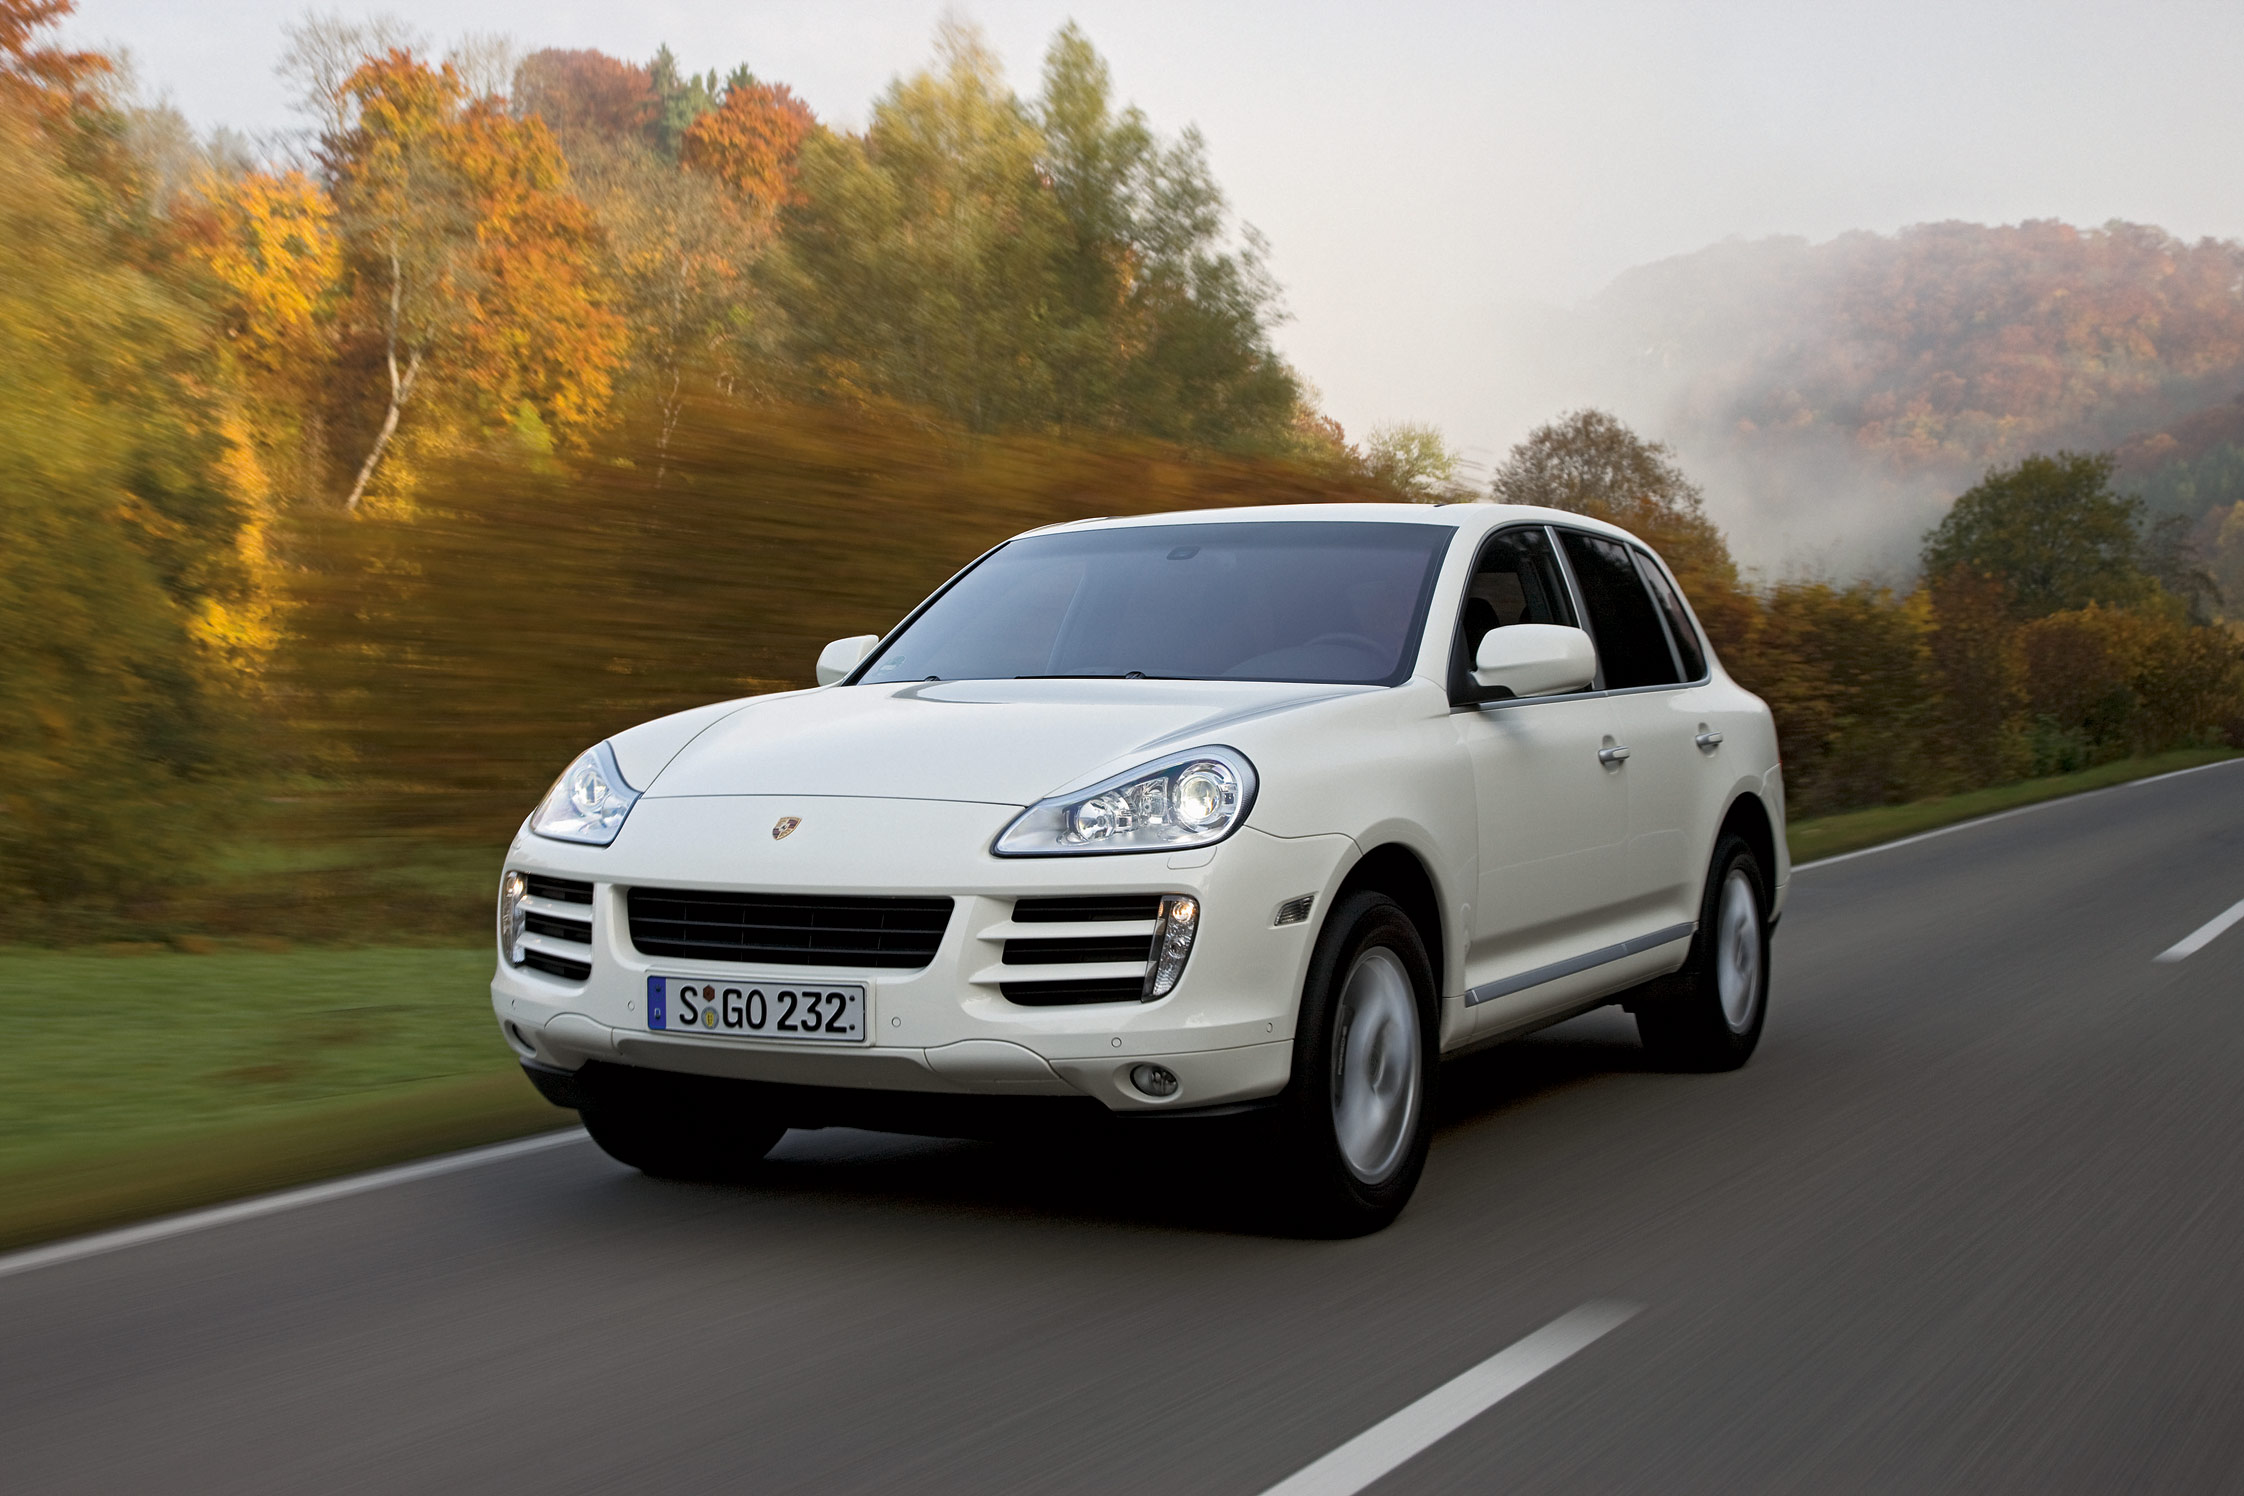 essai porsche cayenne diesel motorlegend. Black Bedroom Furniture Sets. Home Design Ideas